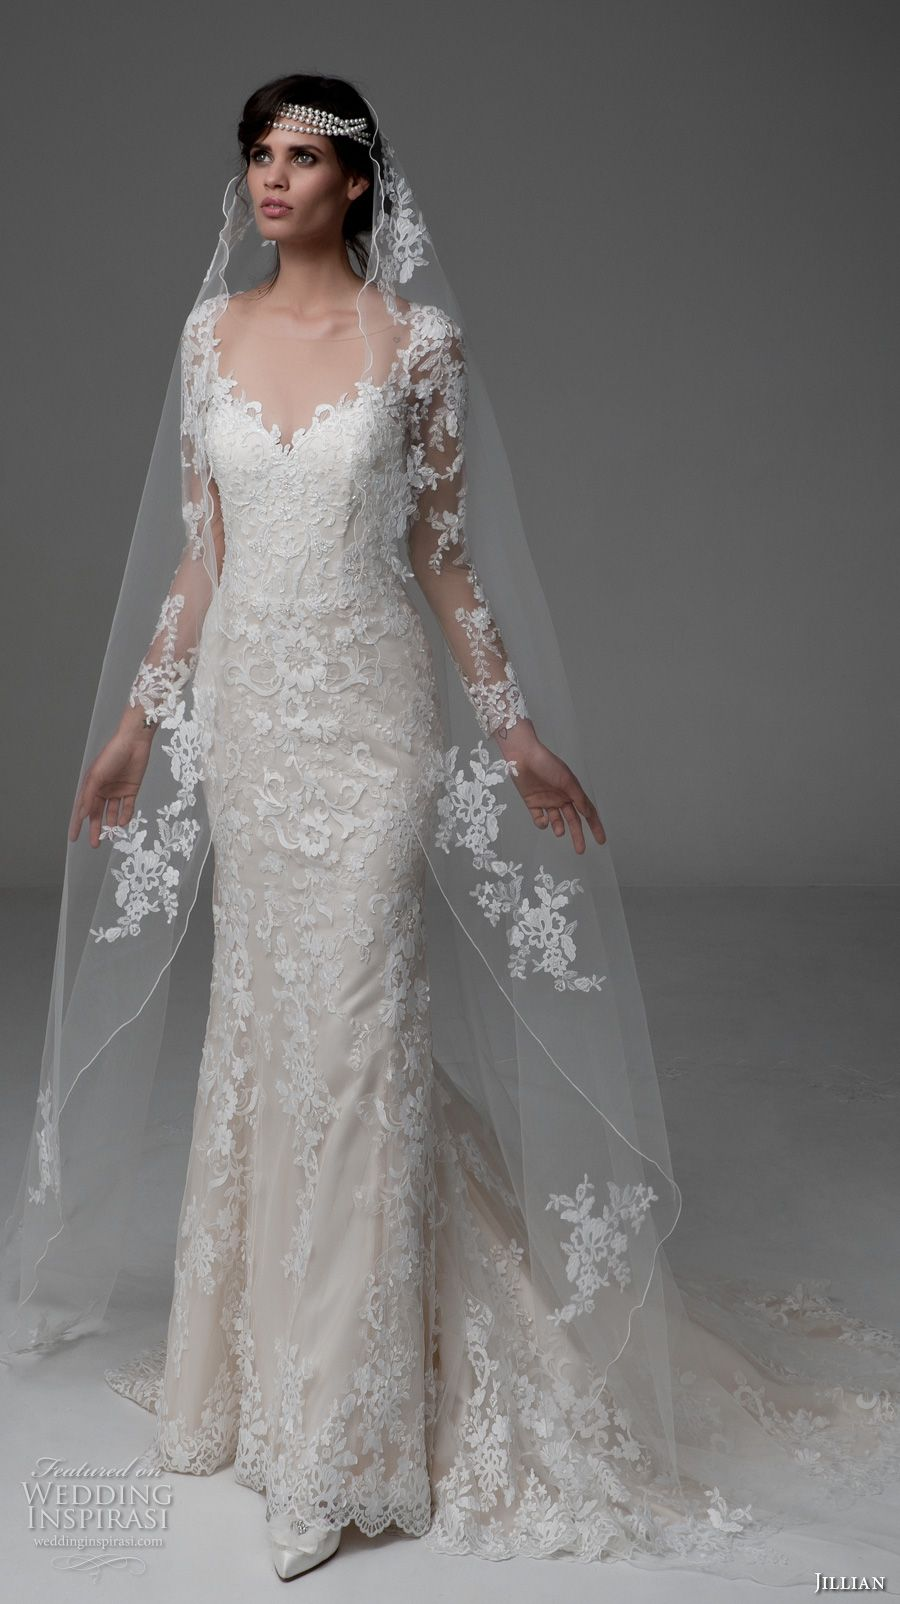 Jillian wedding dresses u ucartemisiaud bridal collection lace